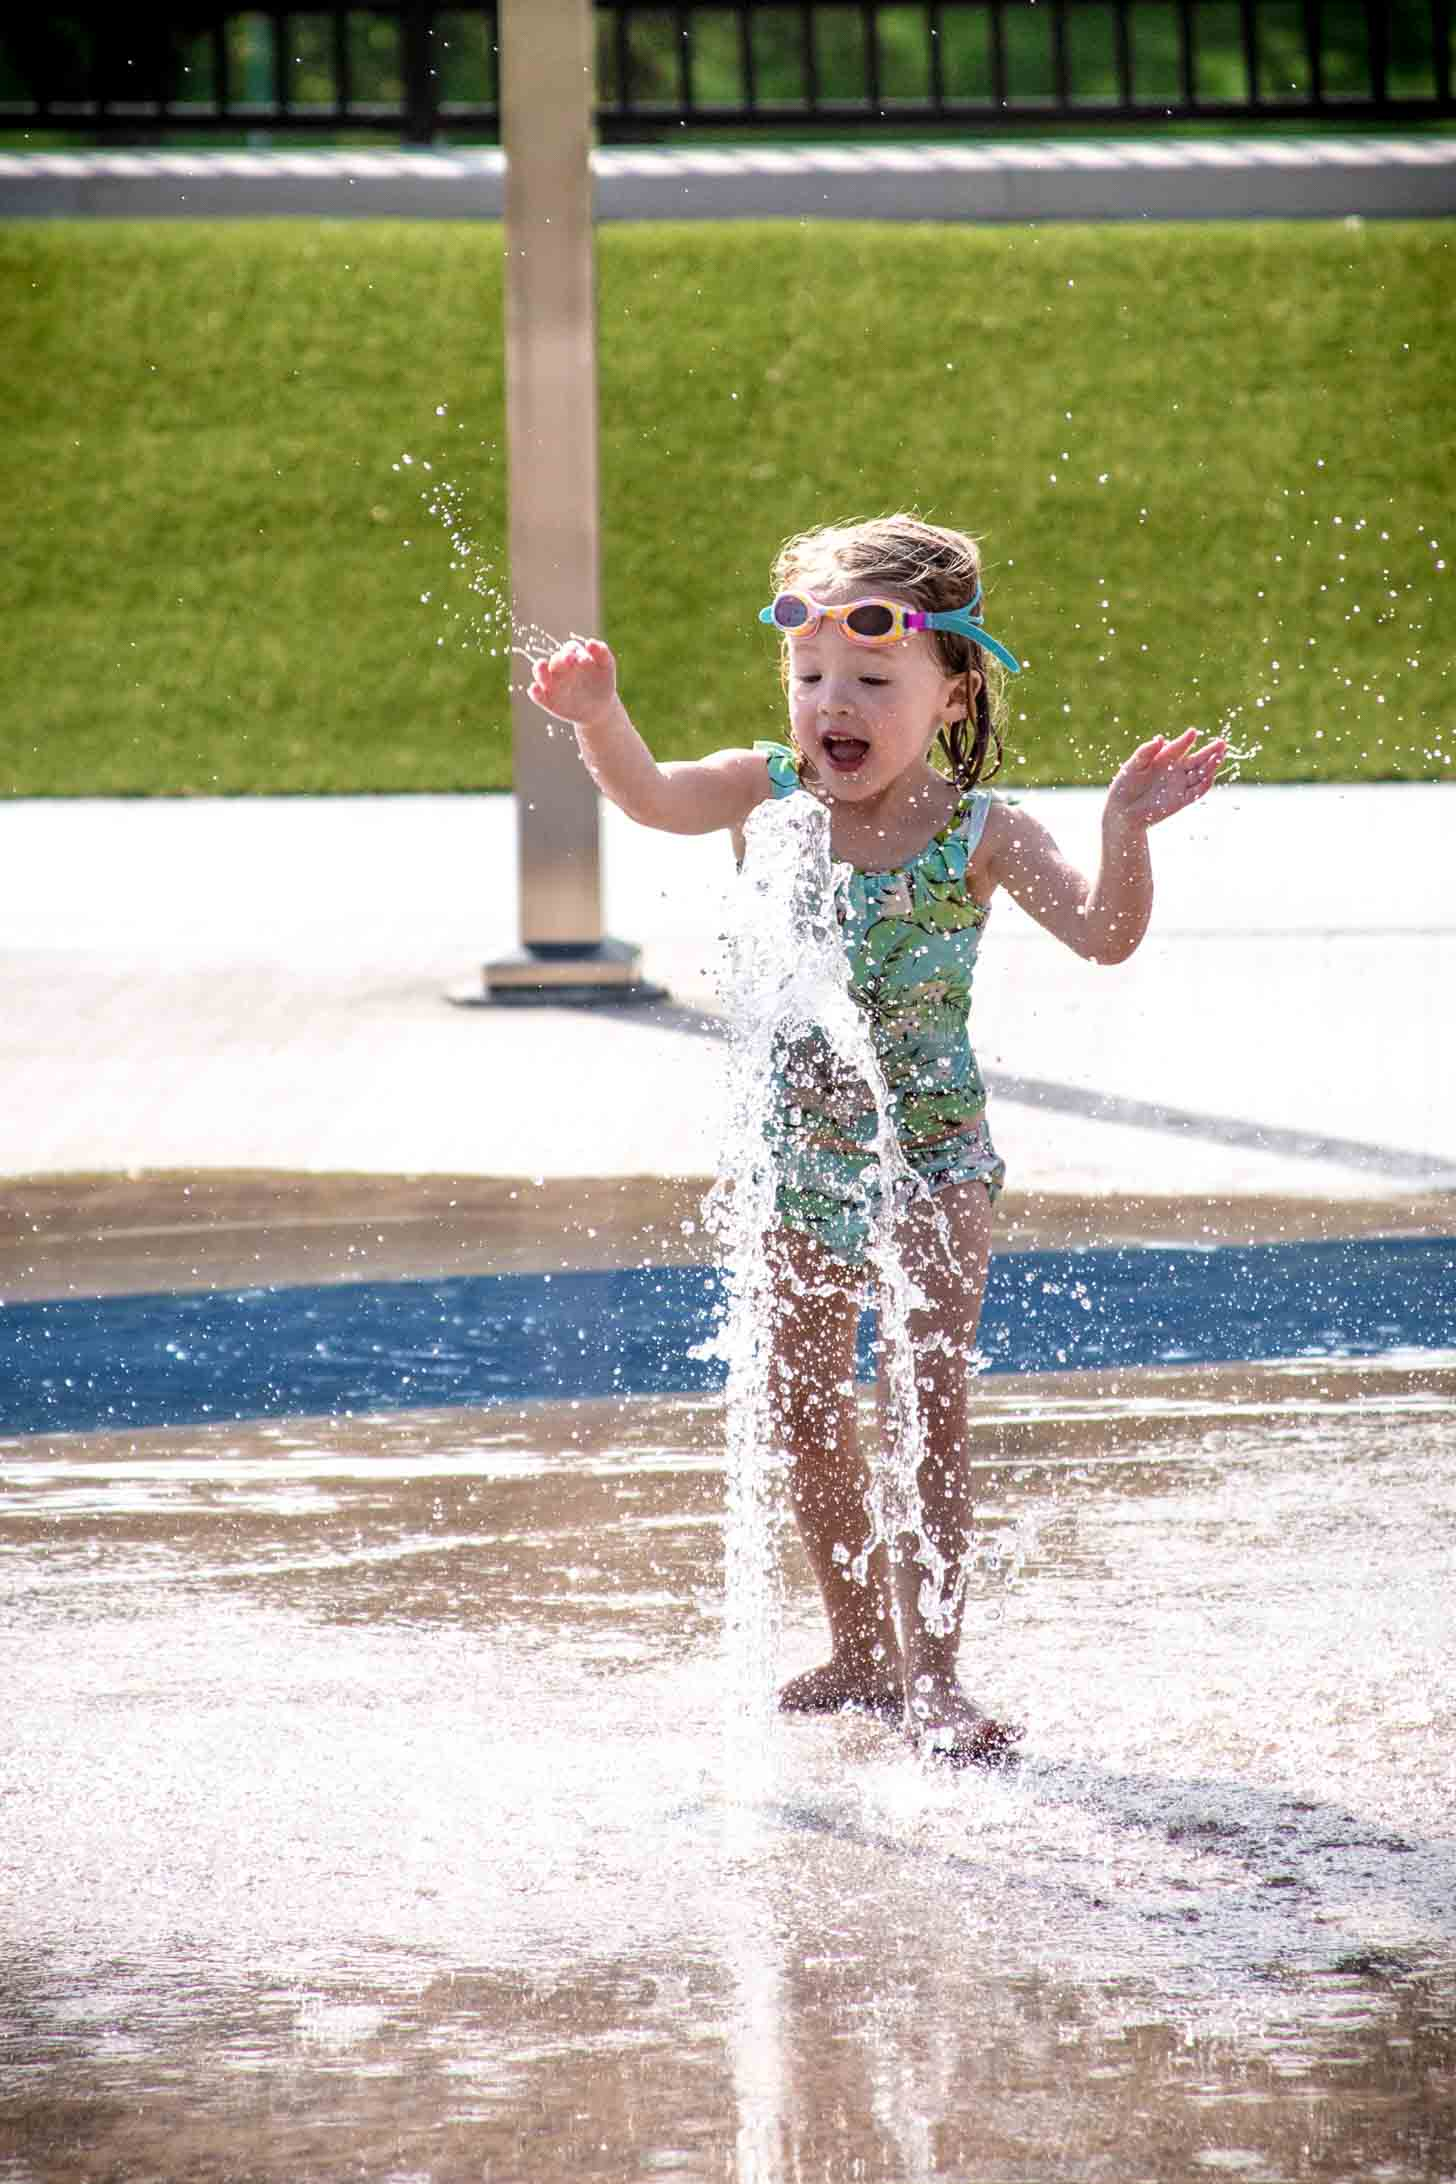 a little girl in a bathing suit and swim goggles playing in the water